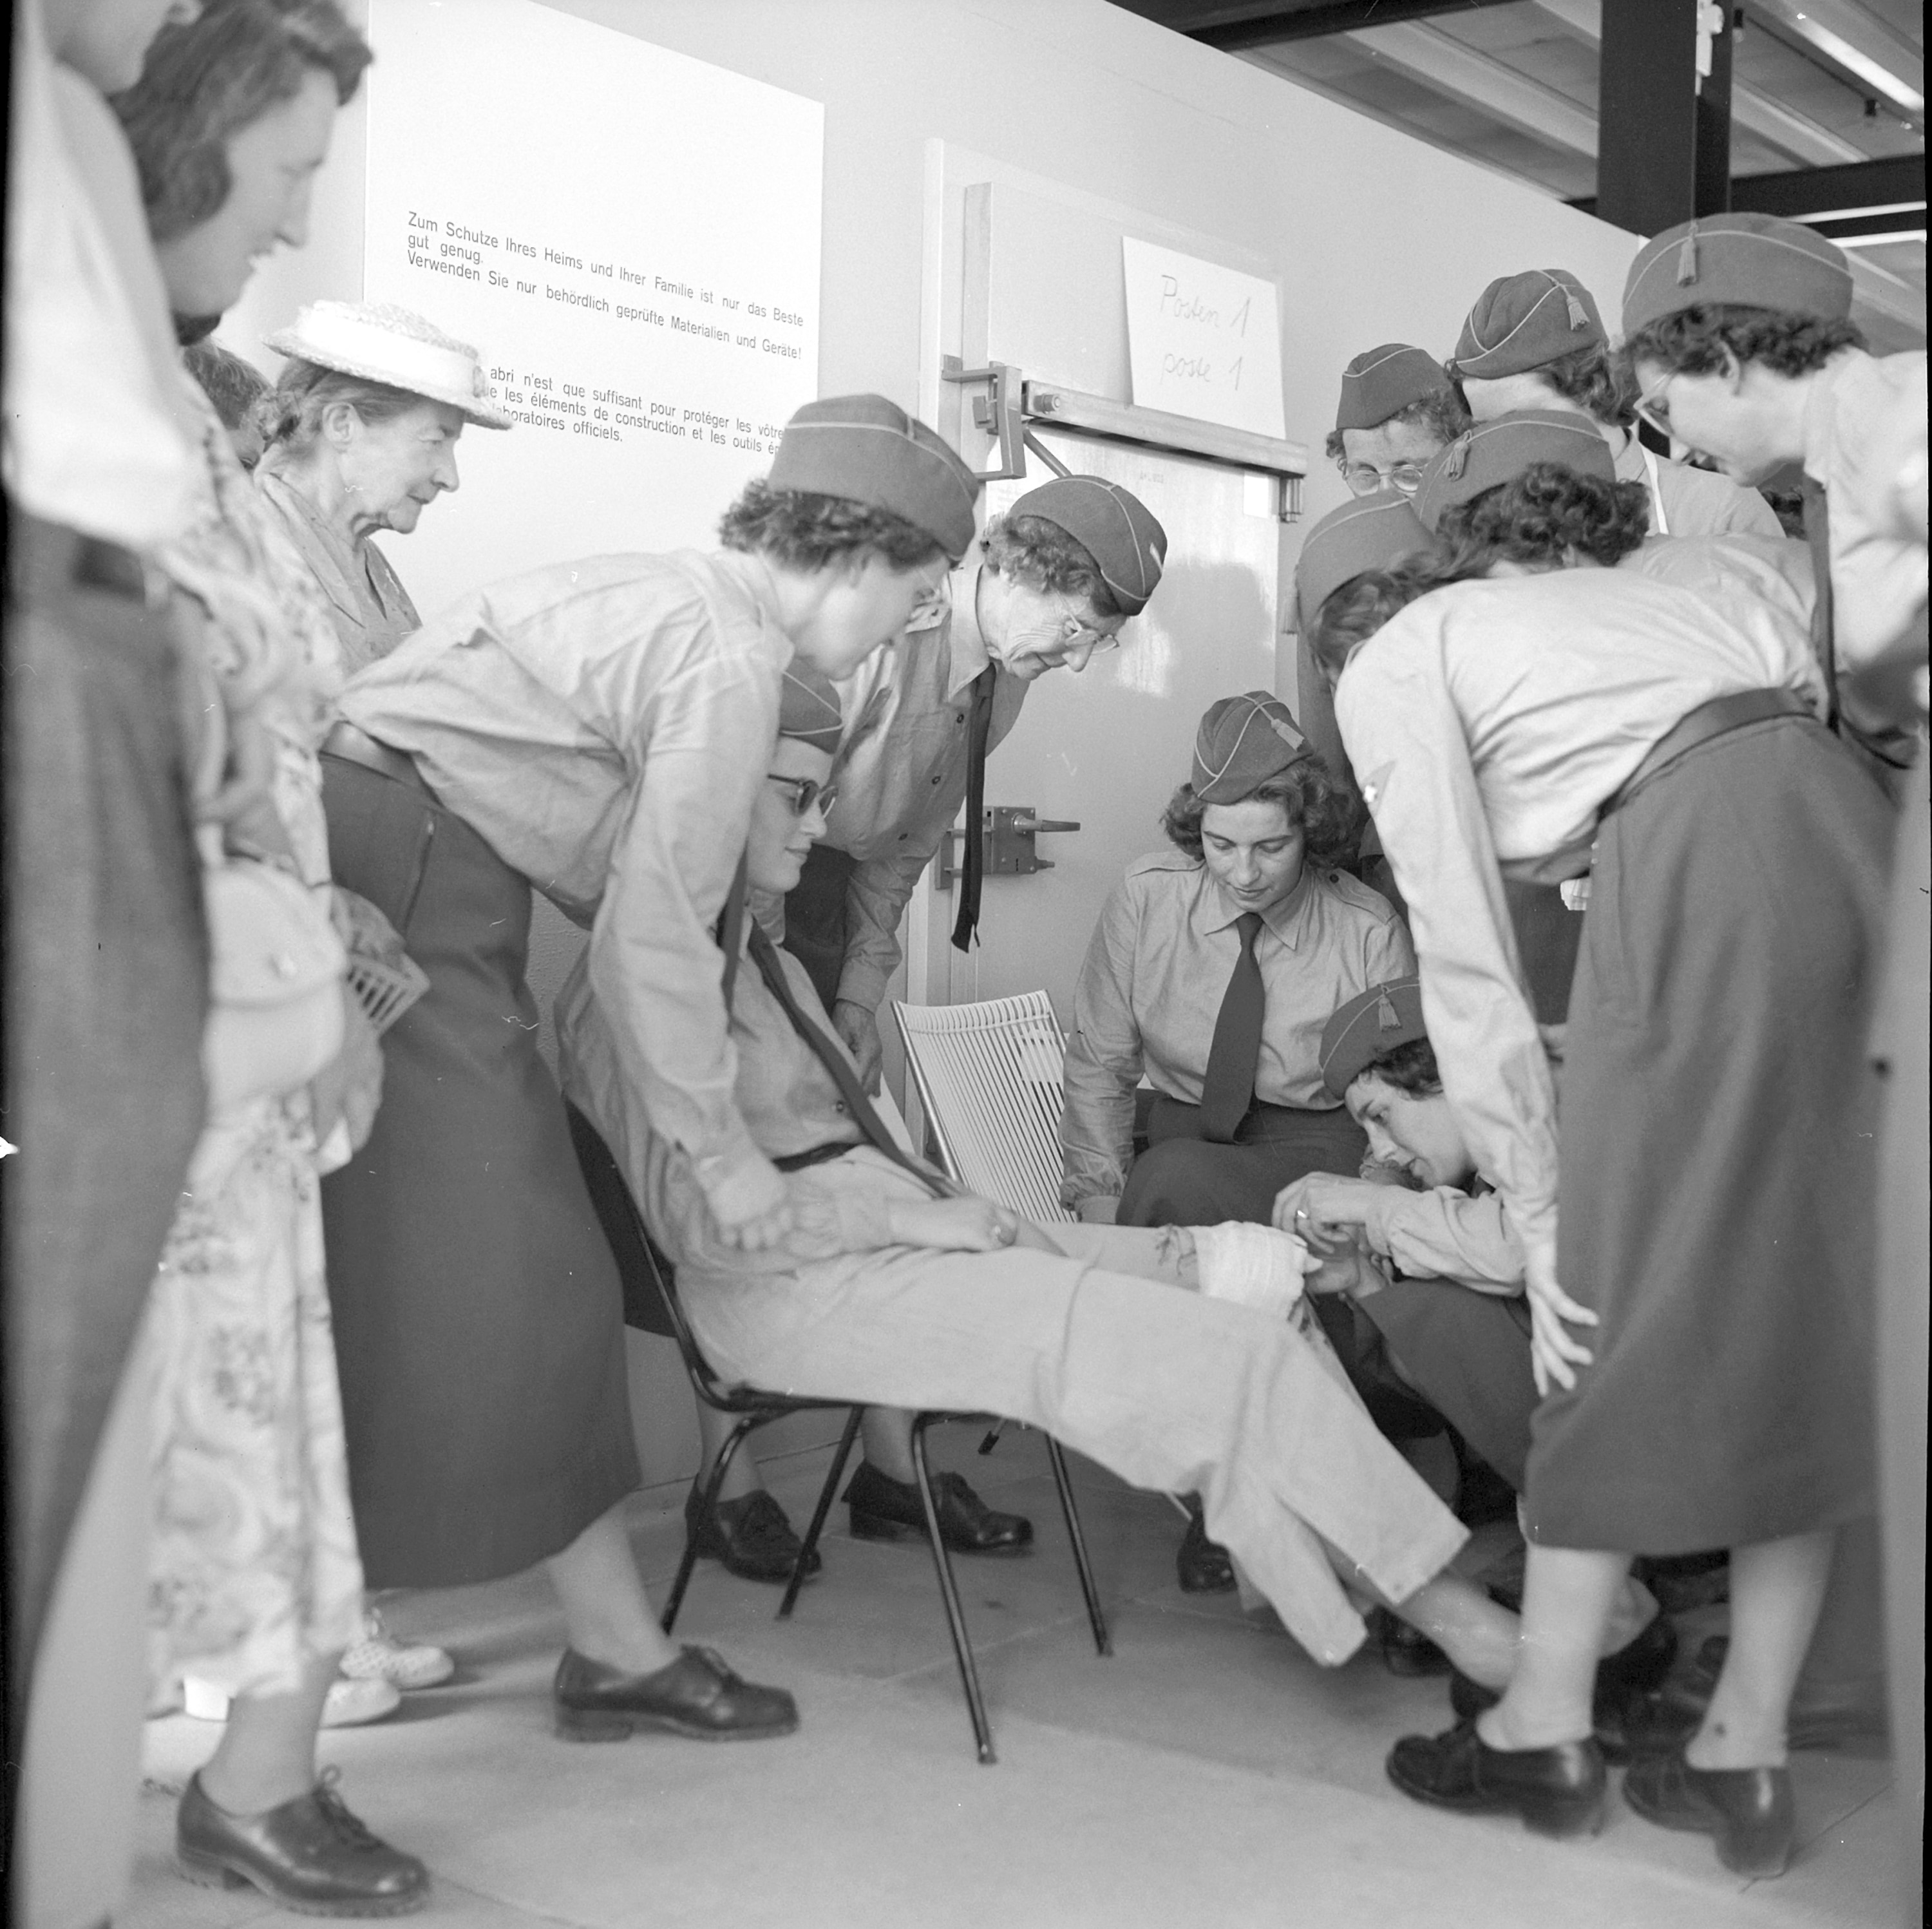 Female soldiers, who were in a supporting role rather than engaged in combat, give a demonstration